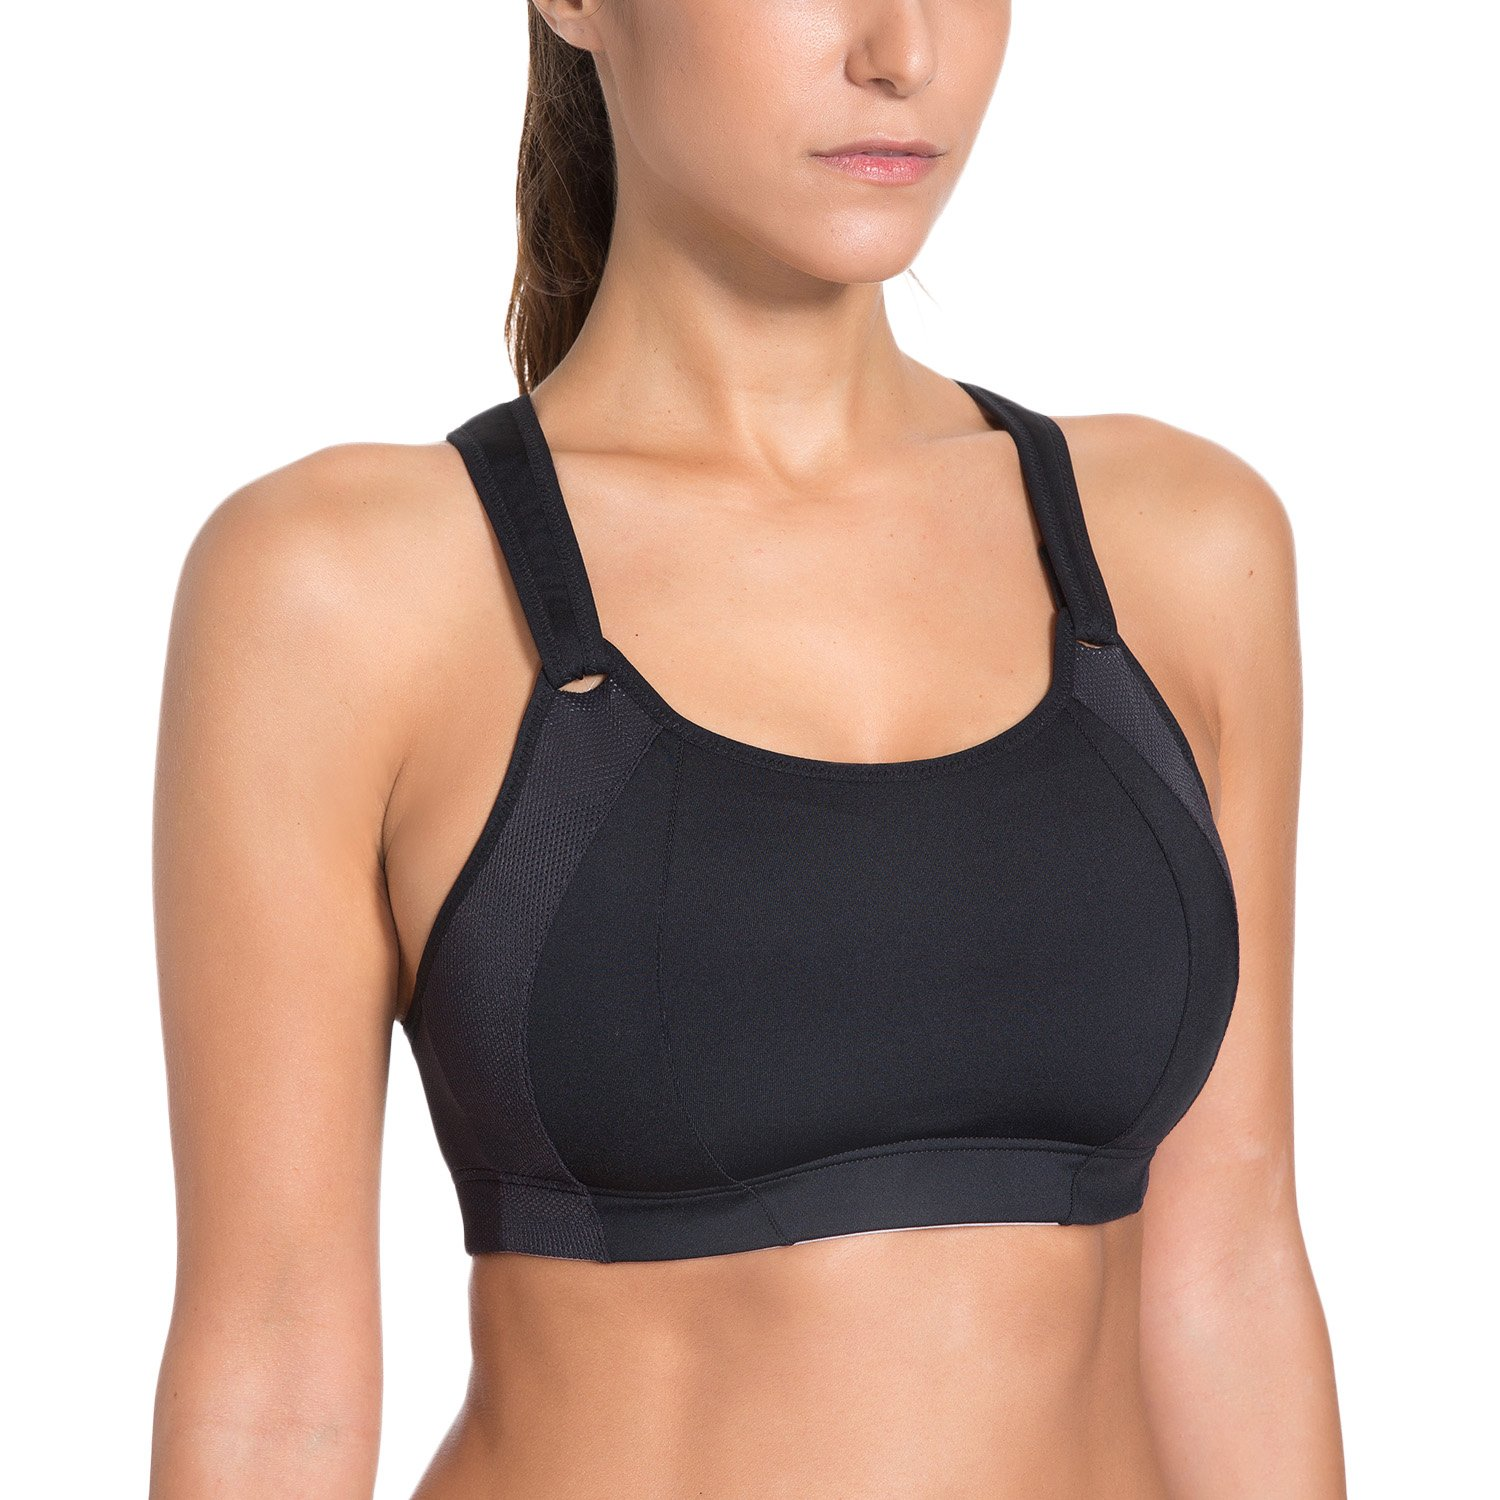 bfd7b153d34 SYROKAN Women s Front Adjustable Lightly Padded Racerback High Impact  Sports Bra at Amazon Women s Clothing store